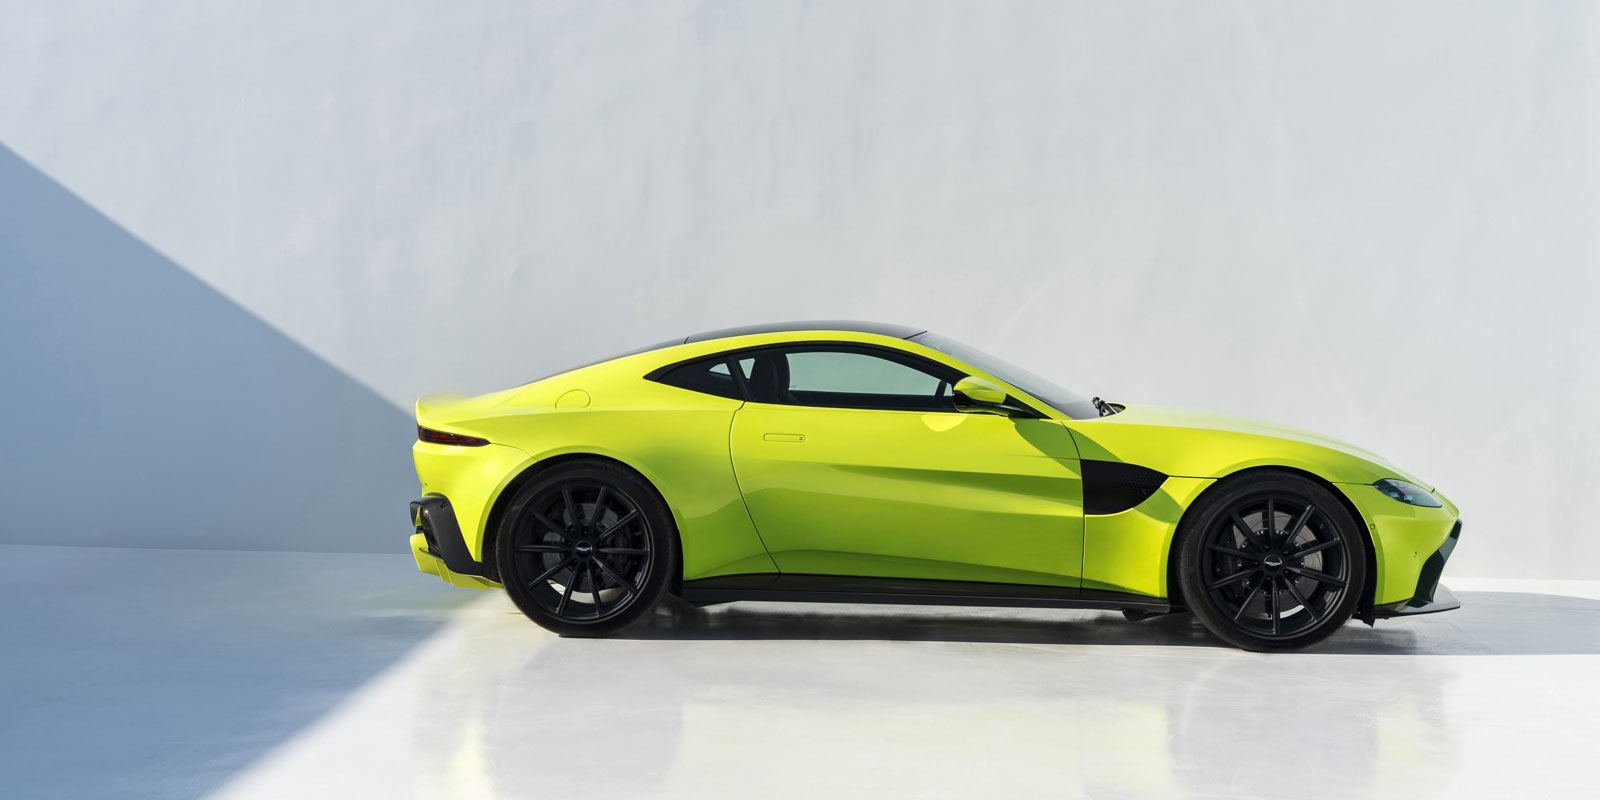 Aston Martin New Vantage - The Archetypal Hunter image 11